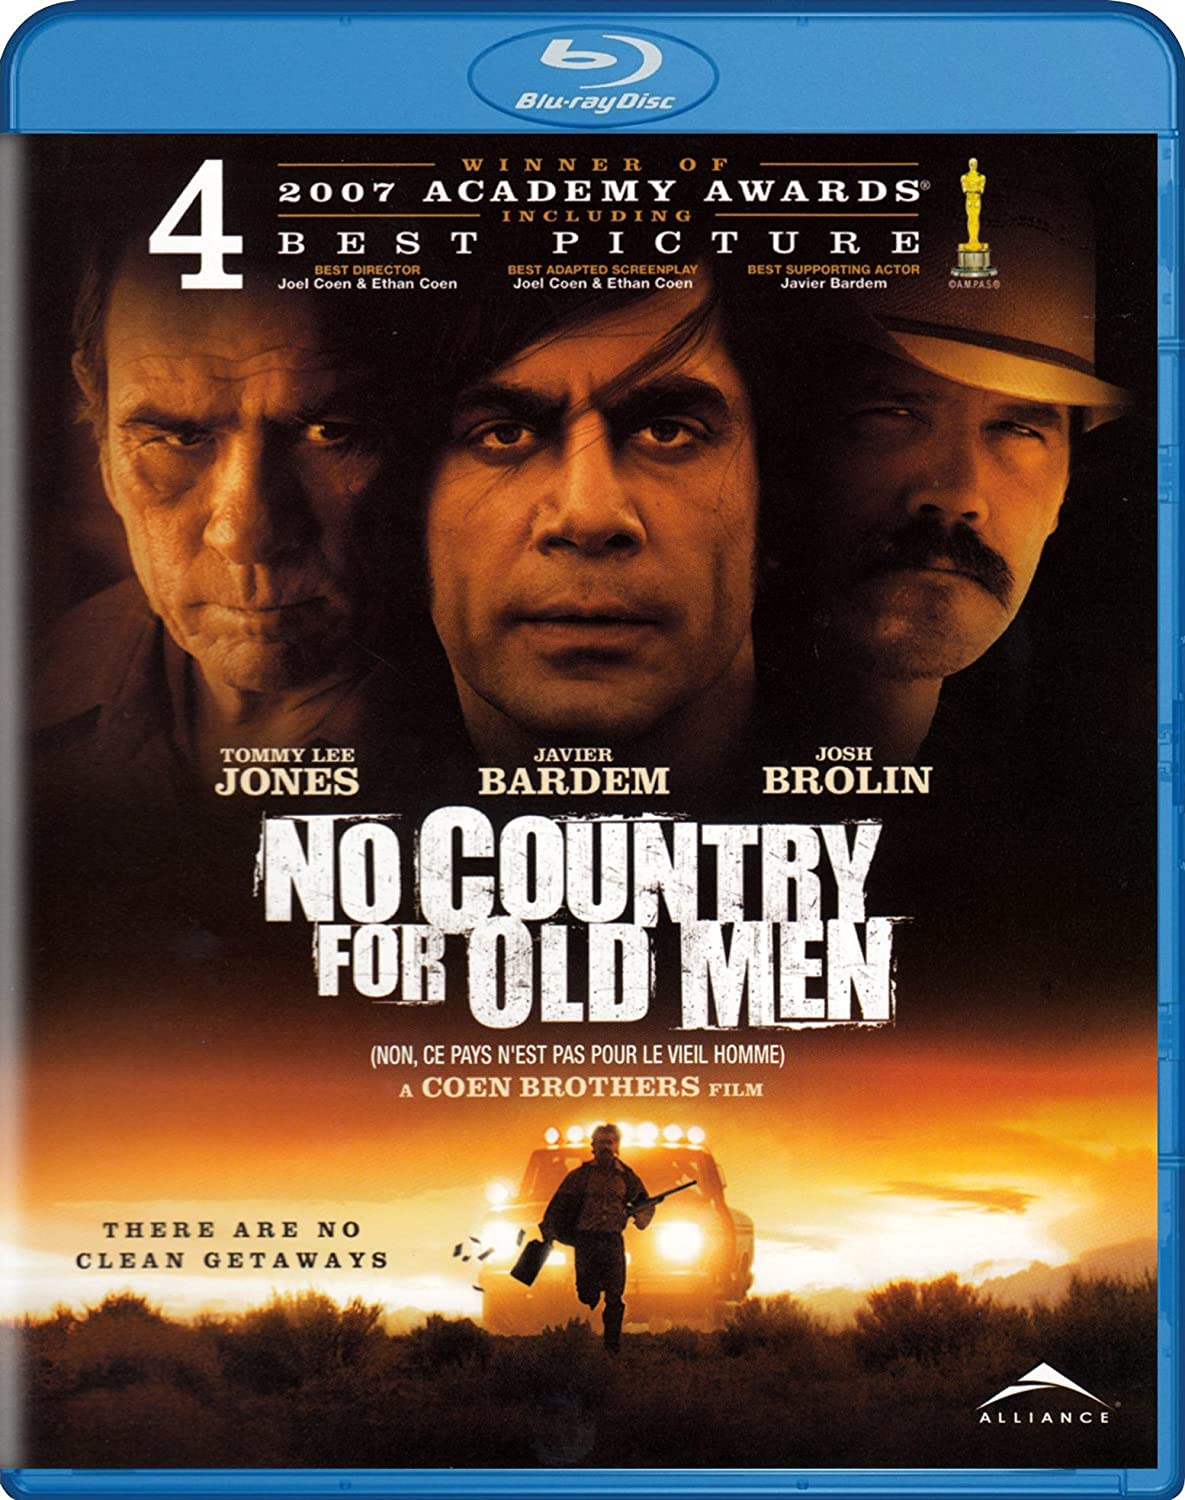 Amazon Com No Country For Old Men Blu Ray Javier Bardem Rodger Boyce Josh Brolin Barry Corbin Beth Grant Tess Harper Woody Harrelson Tommy Lee Jones Stephen Root Kelly Macdonald Garret Dillahunt Ana Reeder